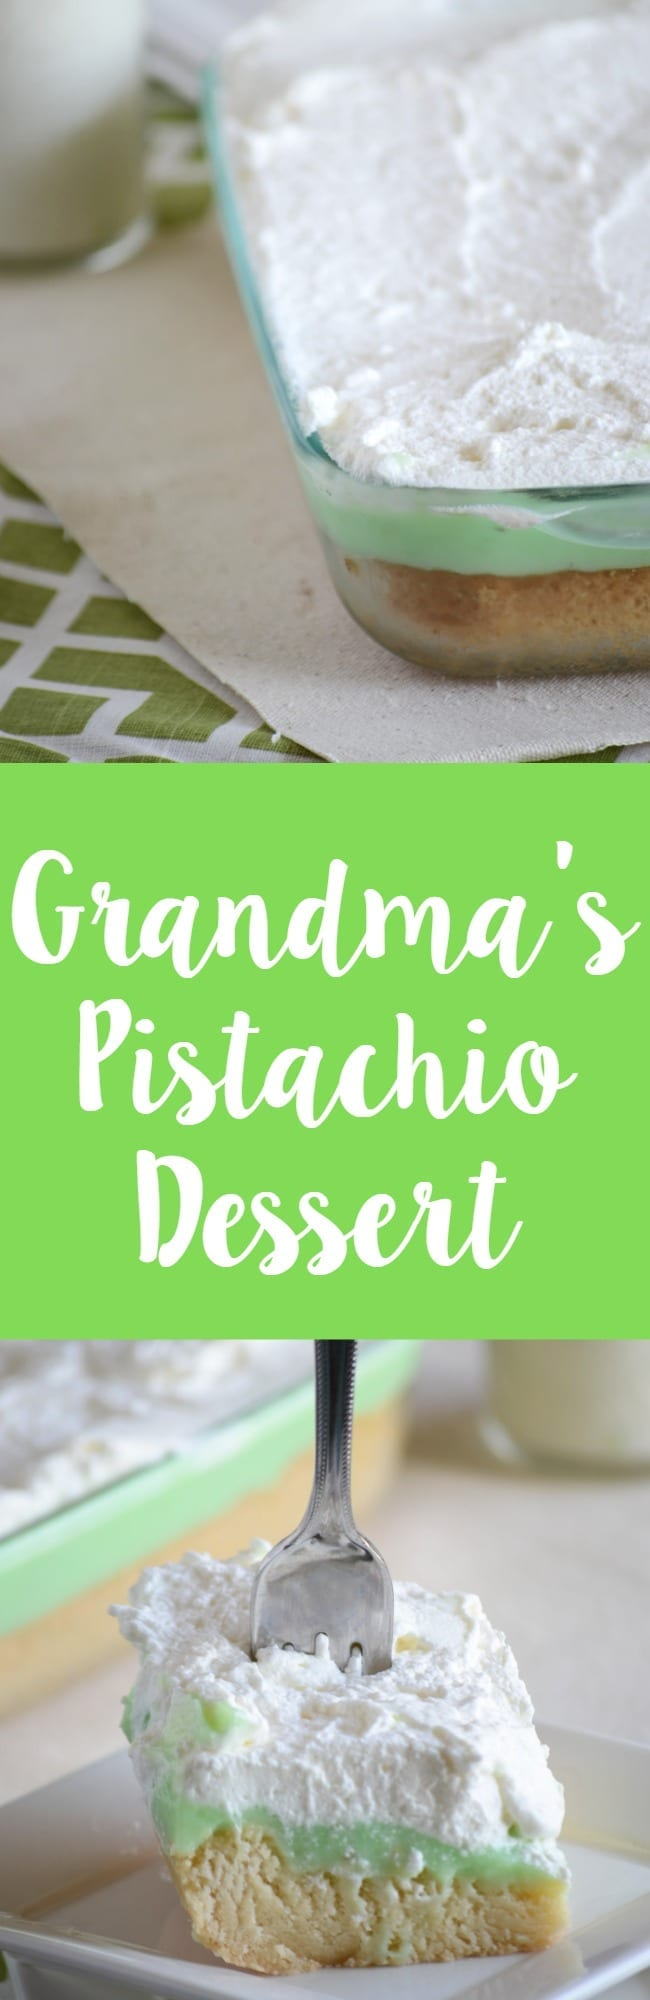 Grandma's pistachio dessert!  Cookie crust, pistachio and homemade whipped cream!  Nothing better